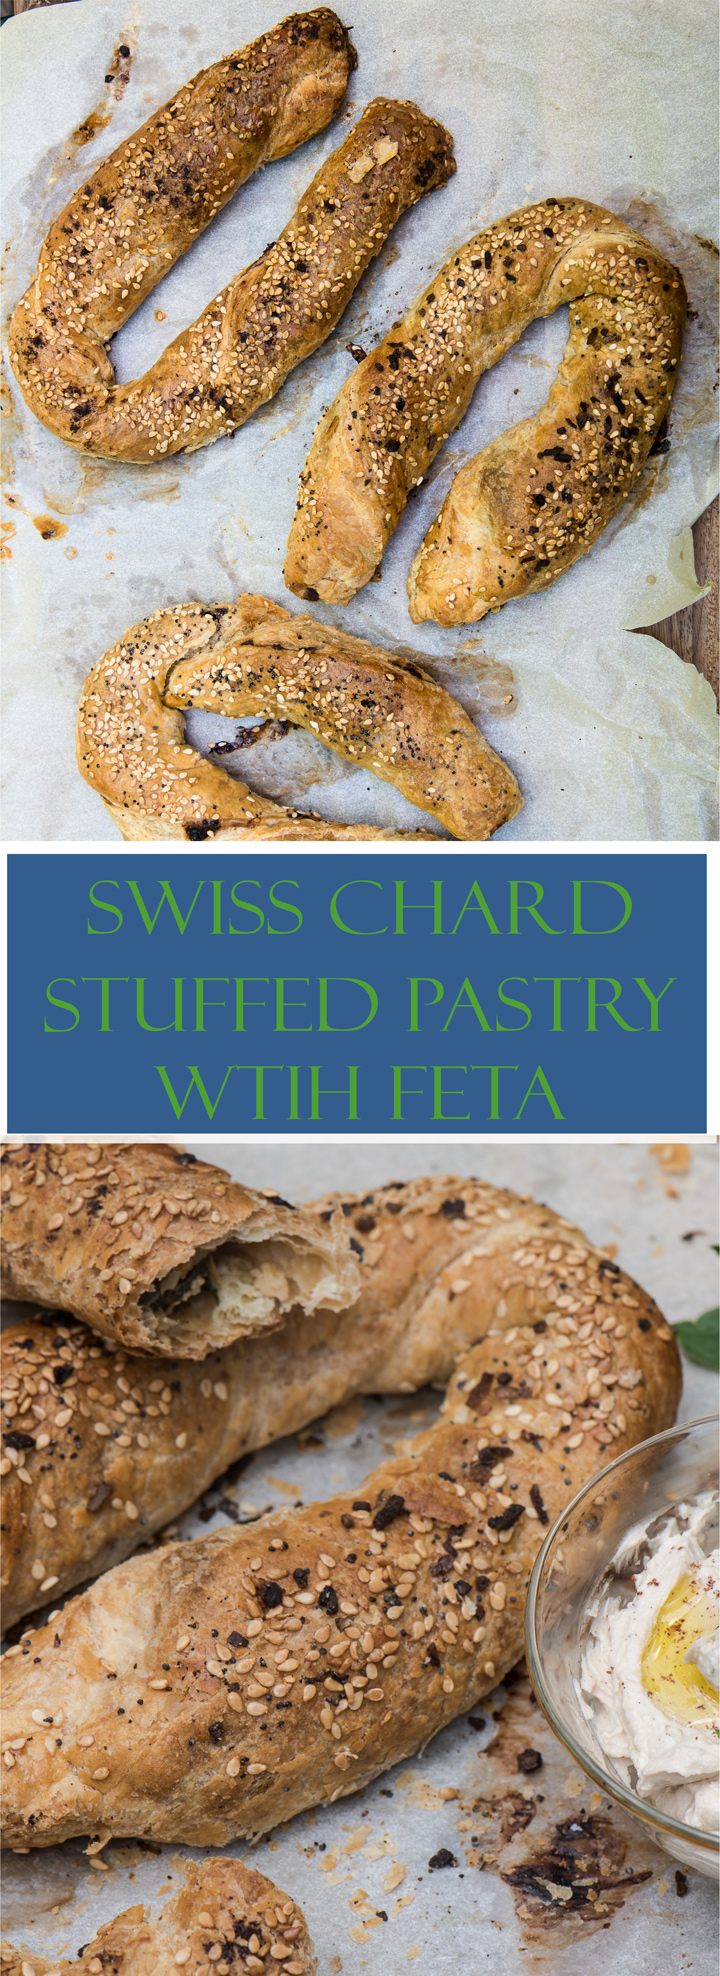 Swiss Chard Stuffed Pastry with Feta recipe